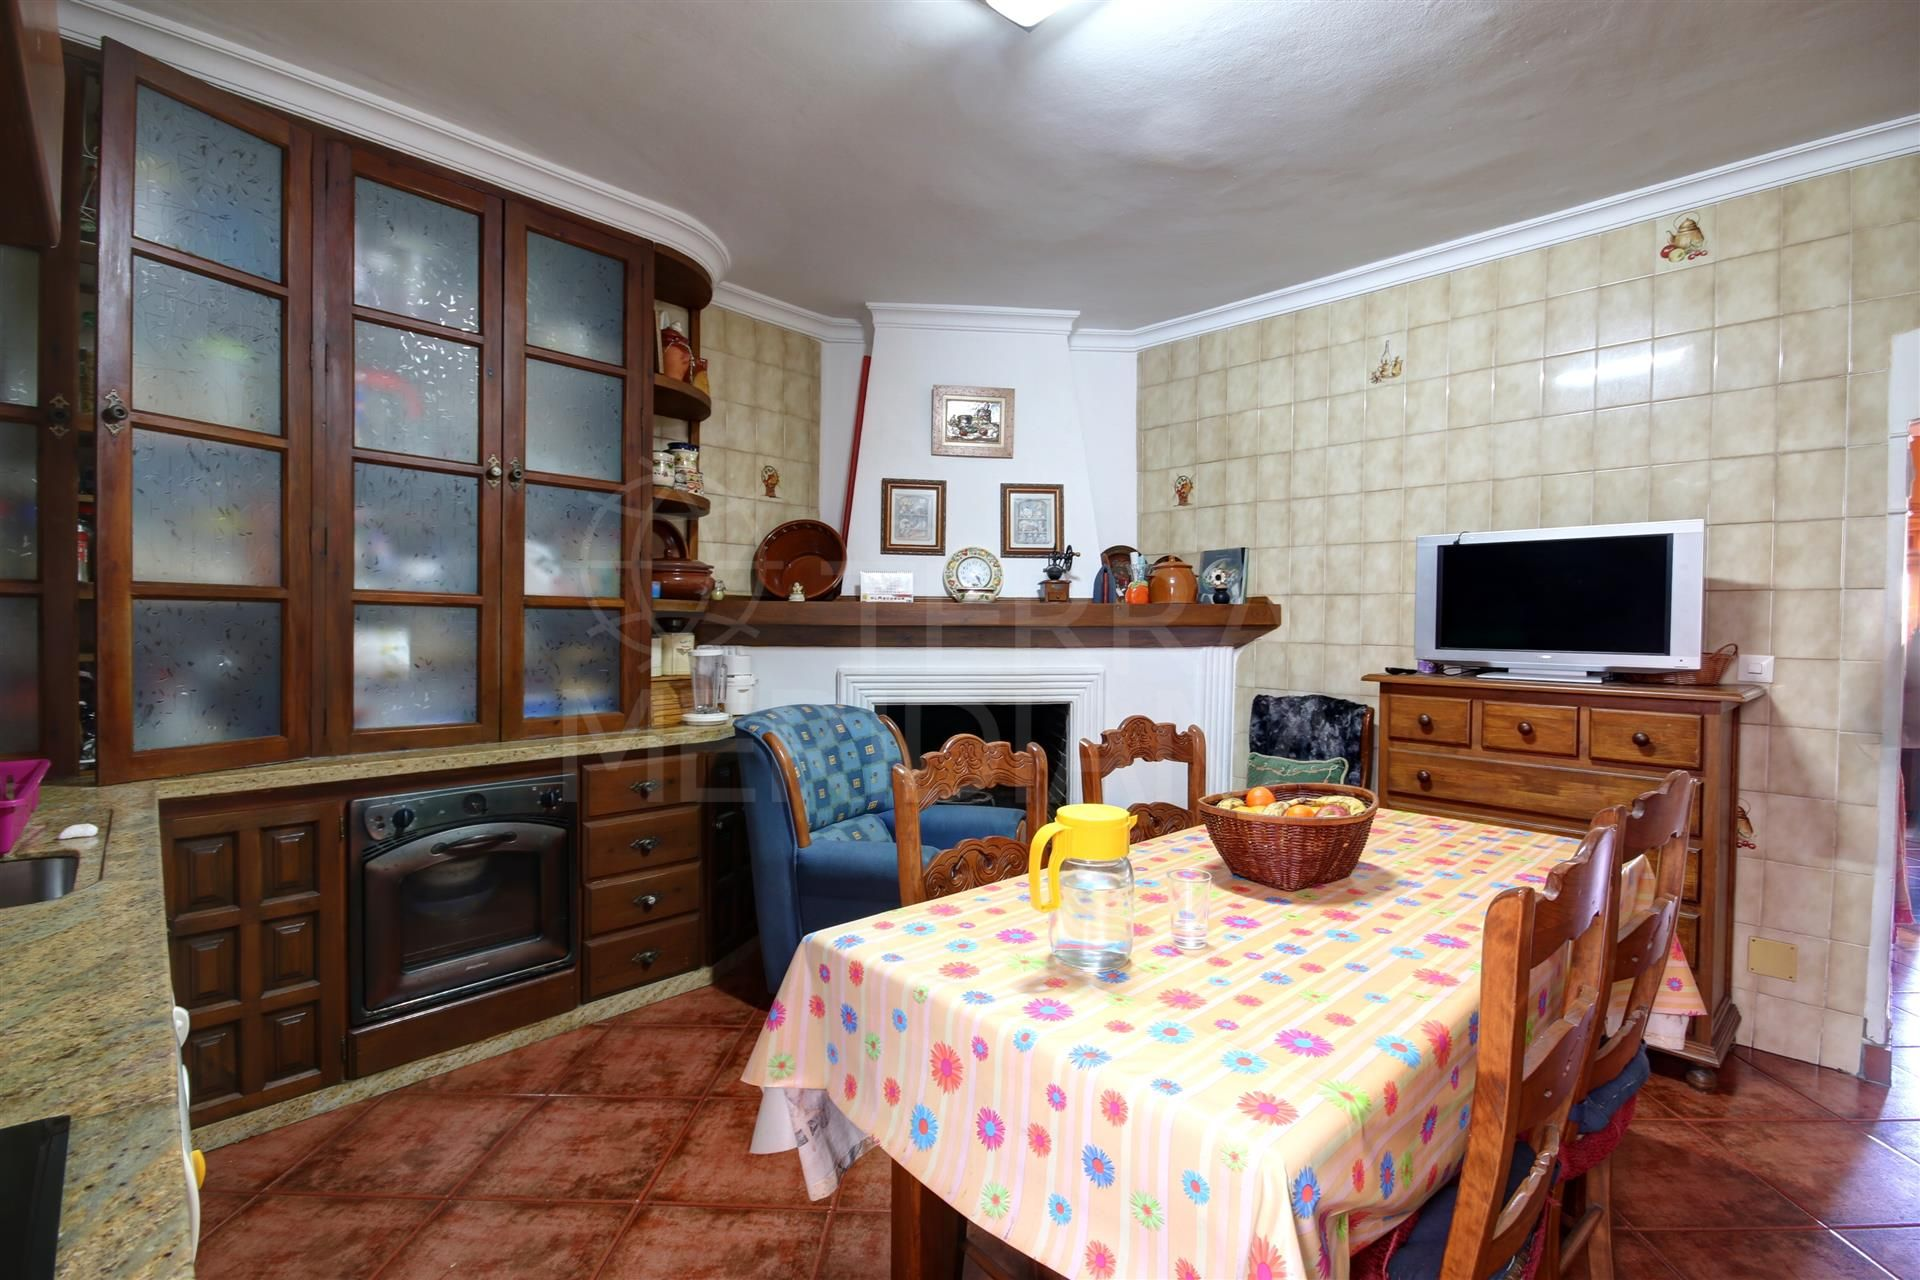 Townhouse for sale in great location in the old town of Estepona, very close to the beach